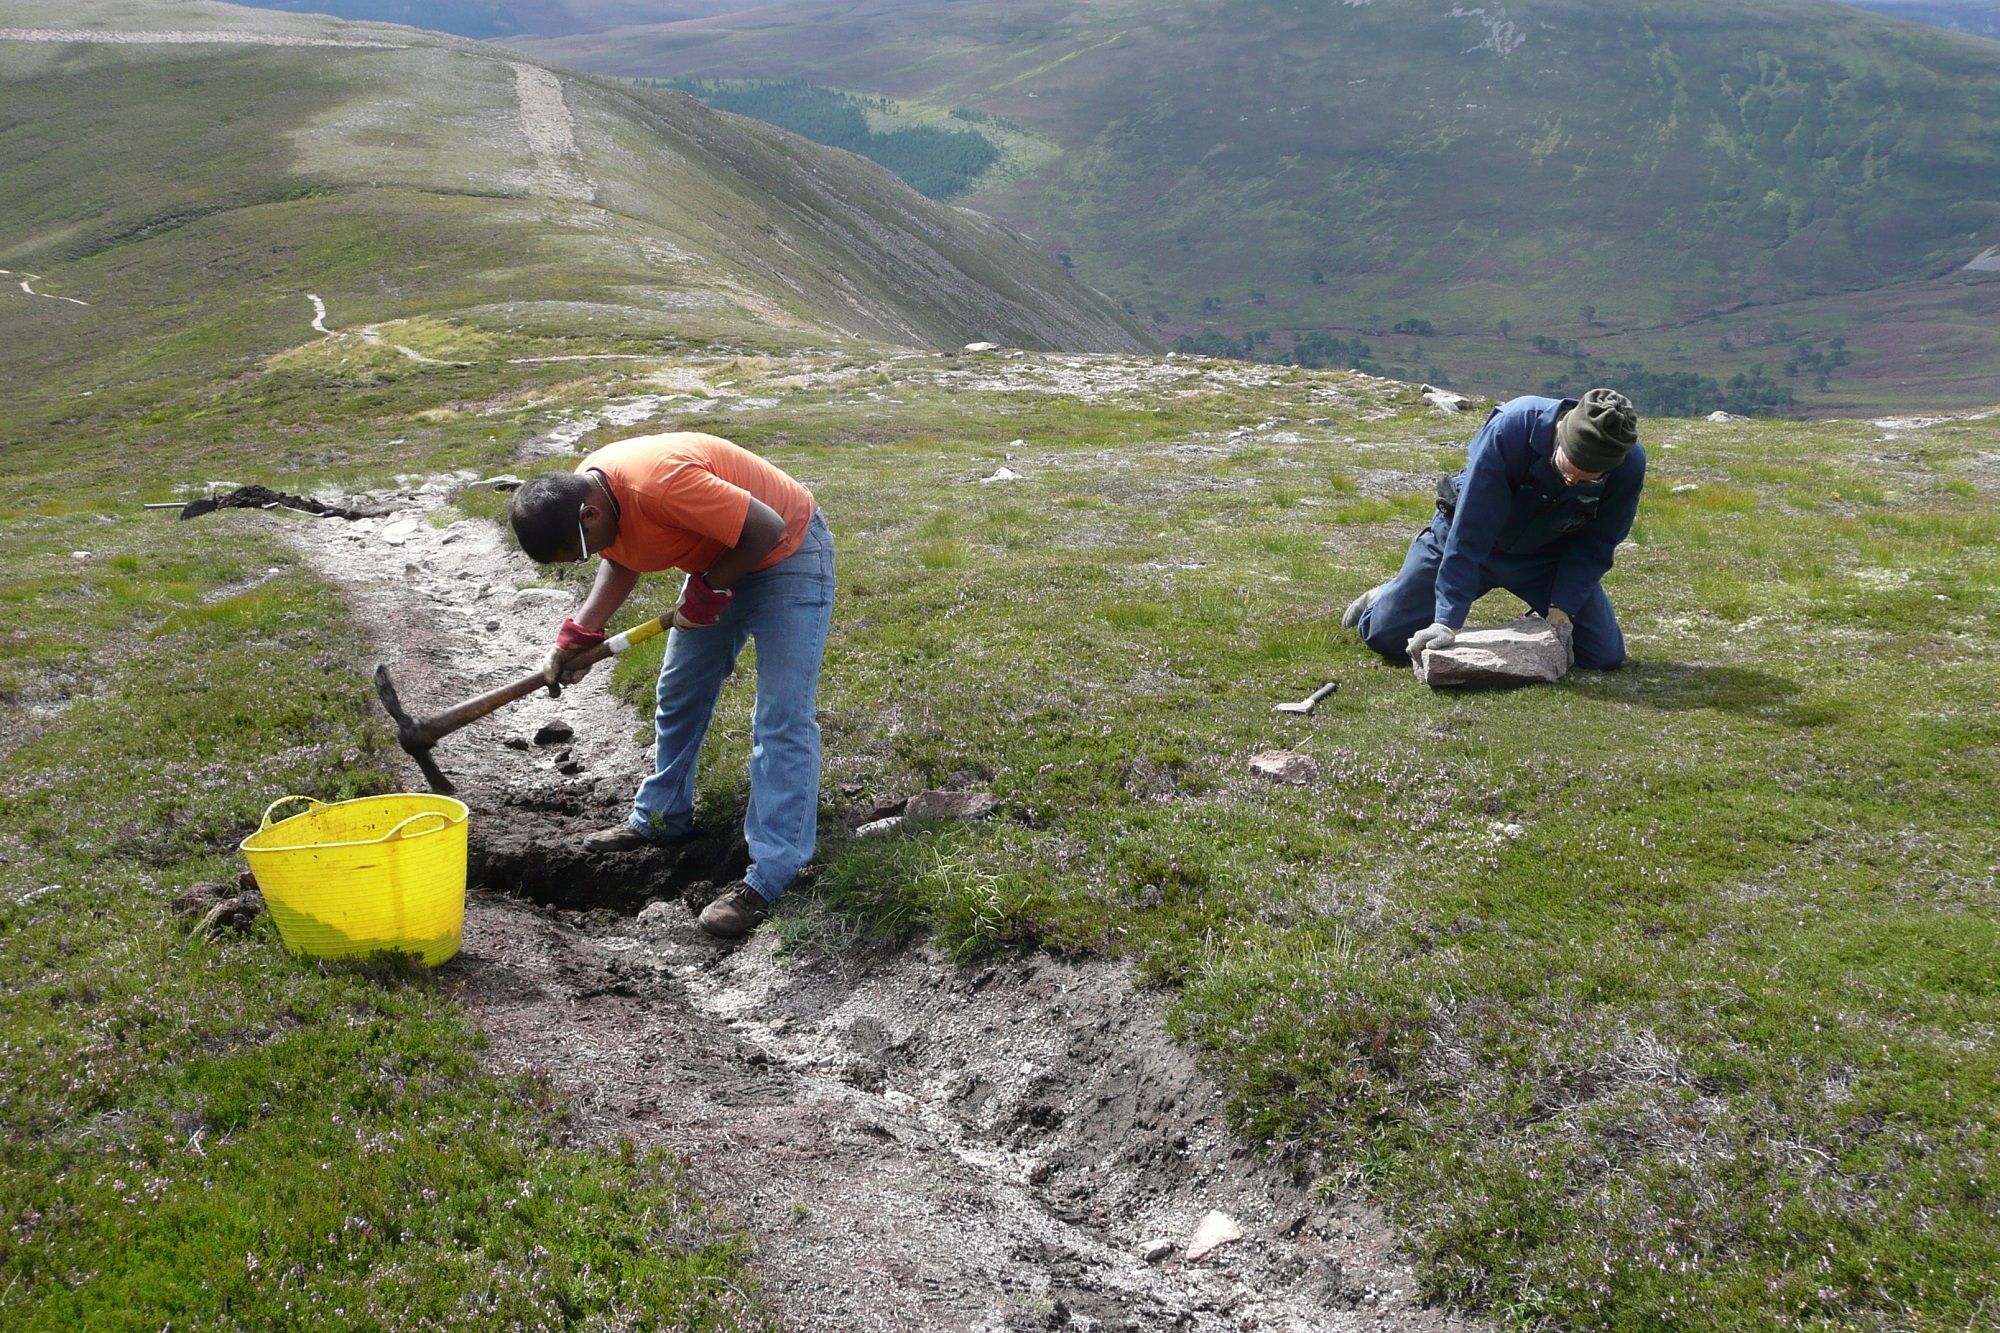 Volunteer in Scotland's most iconic locations